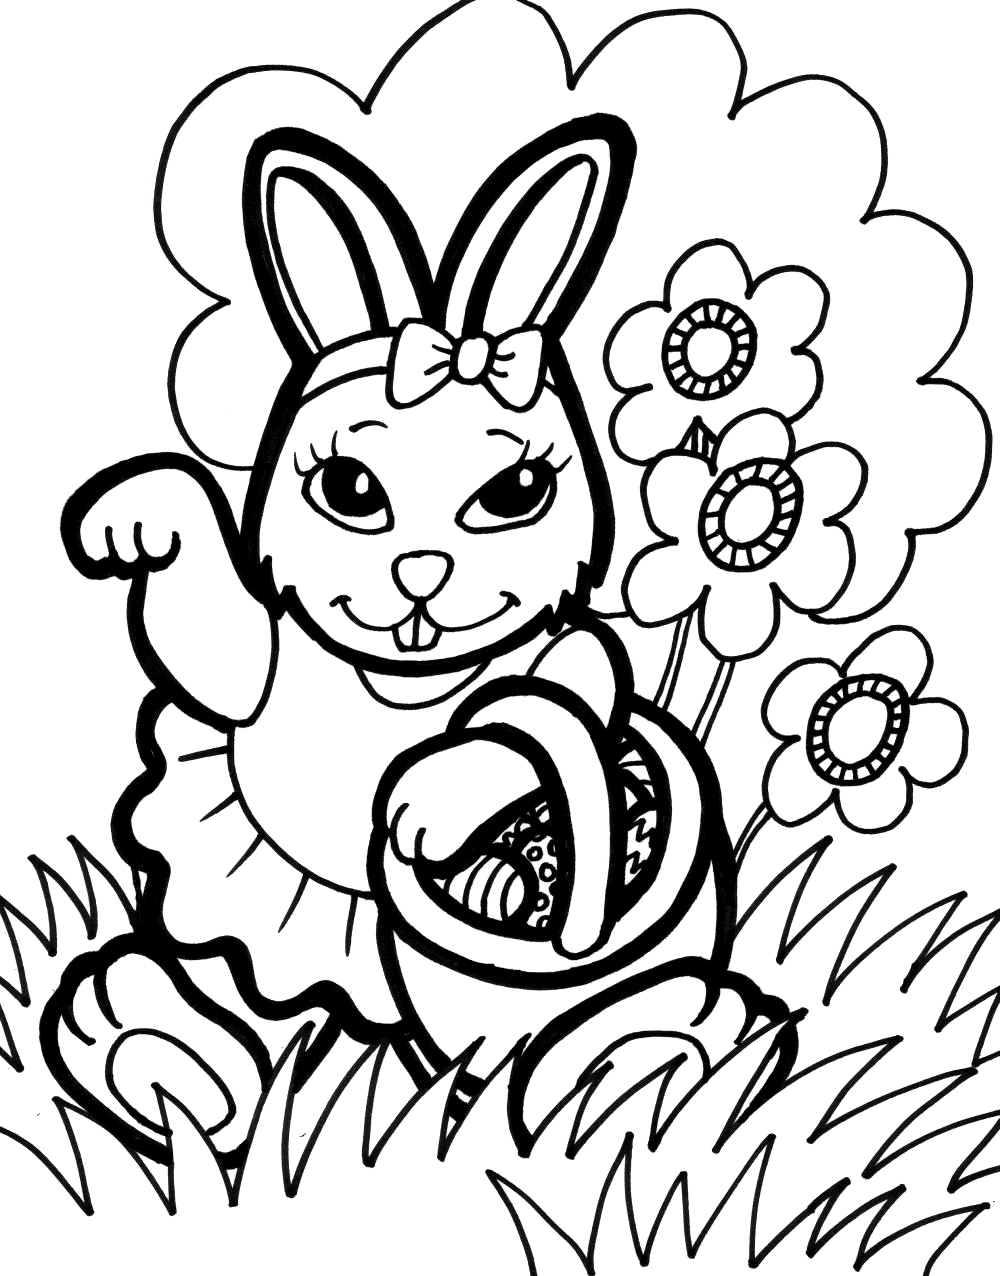 rabbit coloring page bunny rabbit coloring pages to download and print for free page rabbit coloring